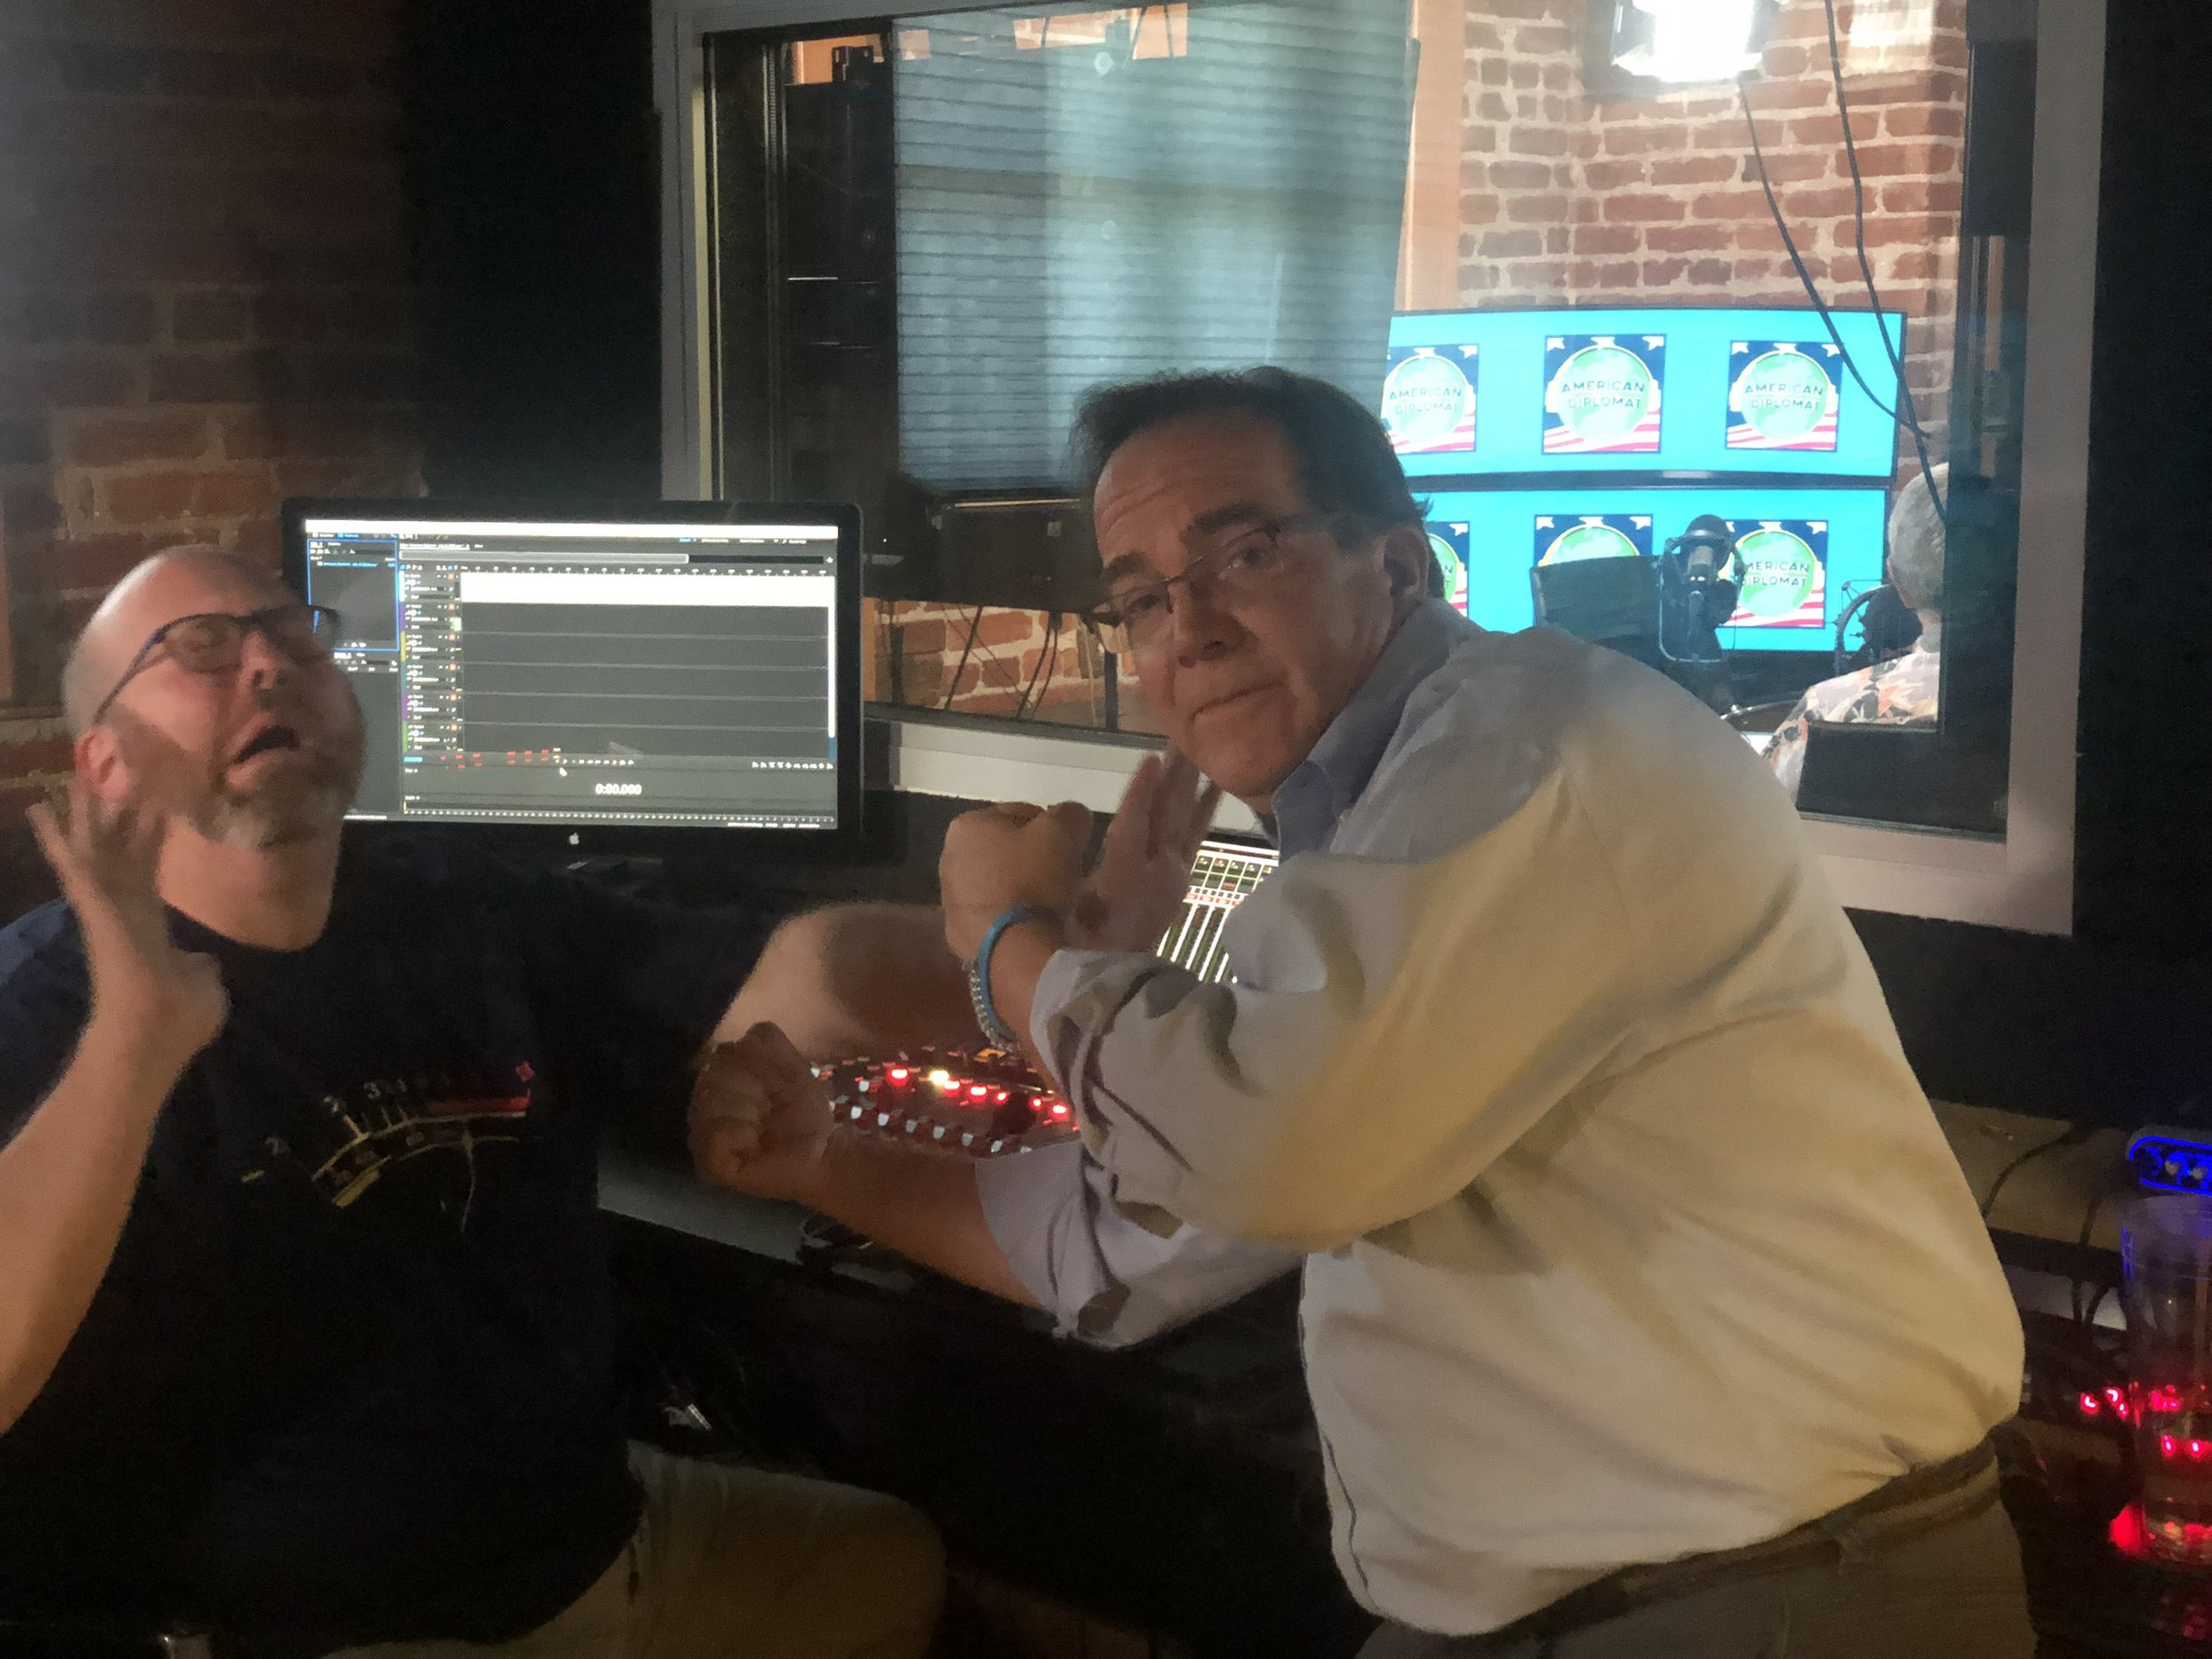 Rob & Podcast Village Founder, Charlie, showing off some Bruce Lee moves in one of the the Control Rooms. The vibe throughout the facility is one of contagious creativity.